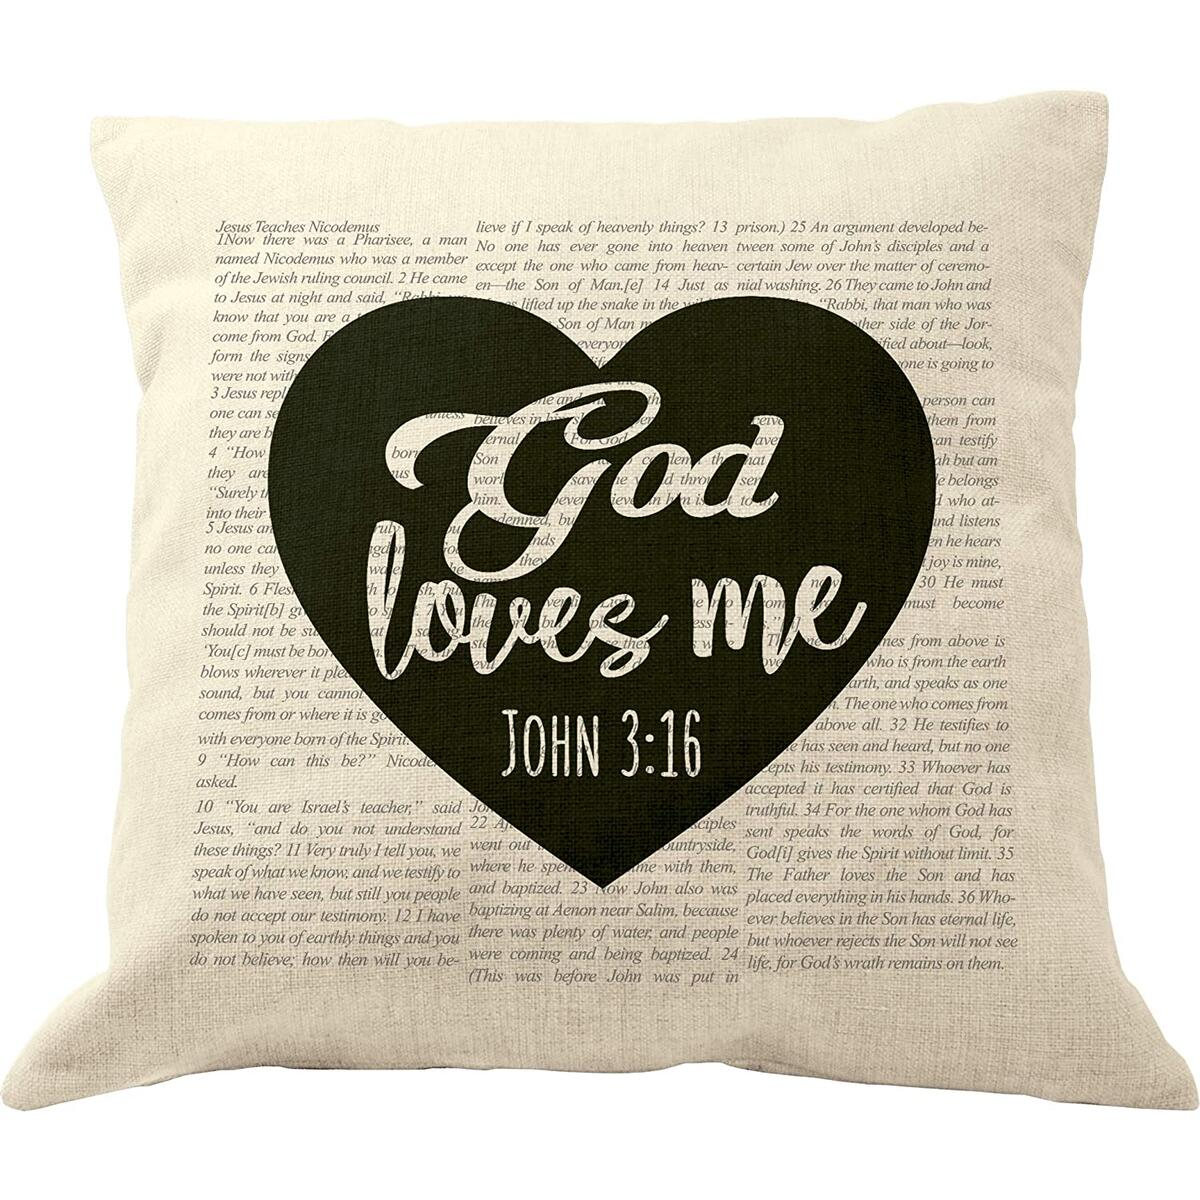 DrupsCo John 3 16 Pillow Cover - Bible Verse Pillow Covers 18x18, Bible Verse Throw Pillow